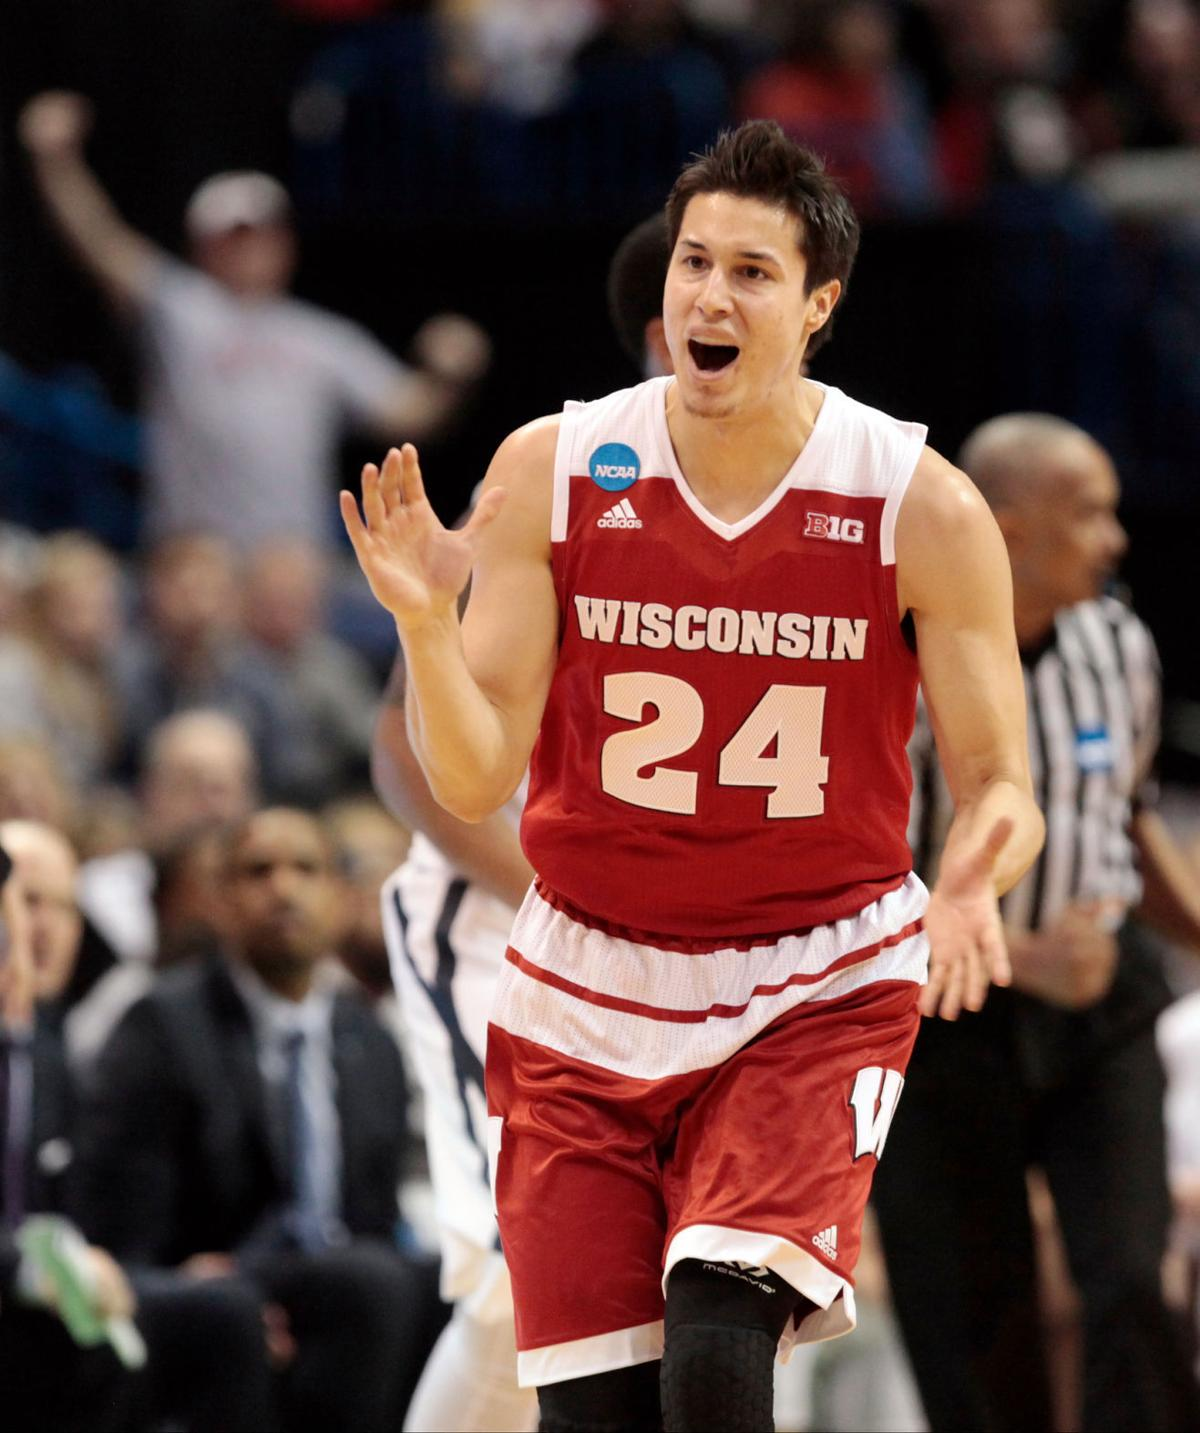 Video: Multiple angles of Bronson Koenig's 3-pointer that sent Wisconsin to the Sweet 16